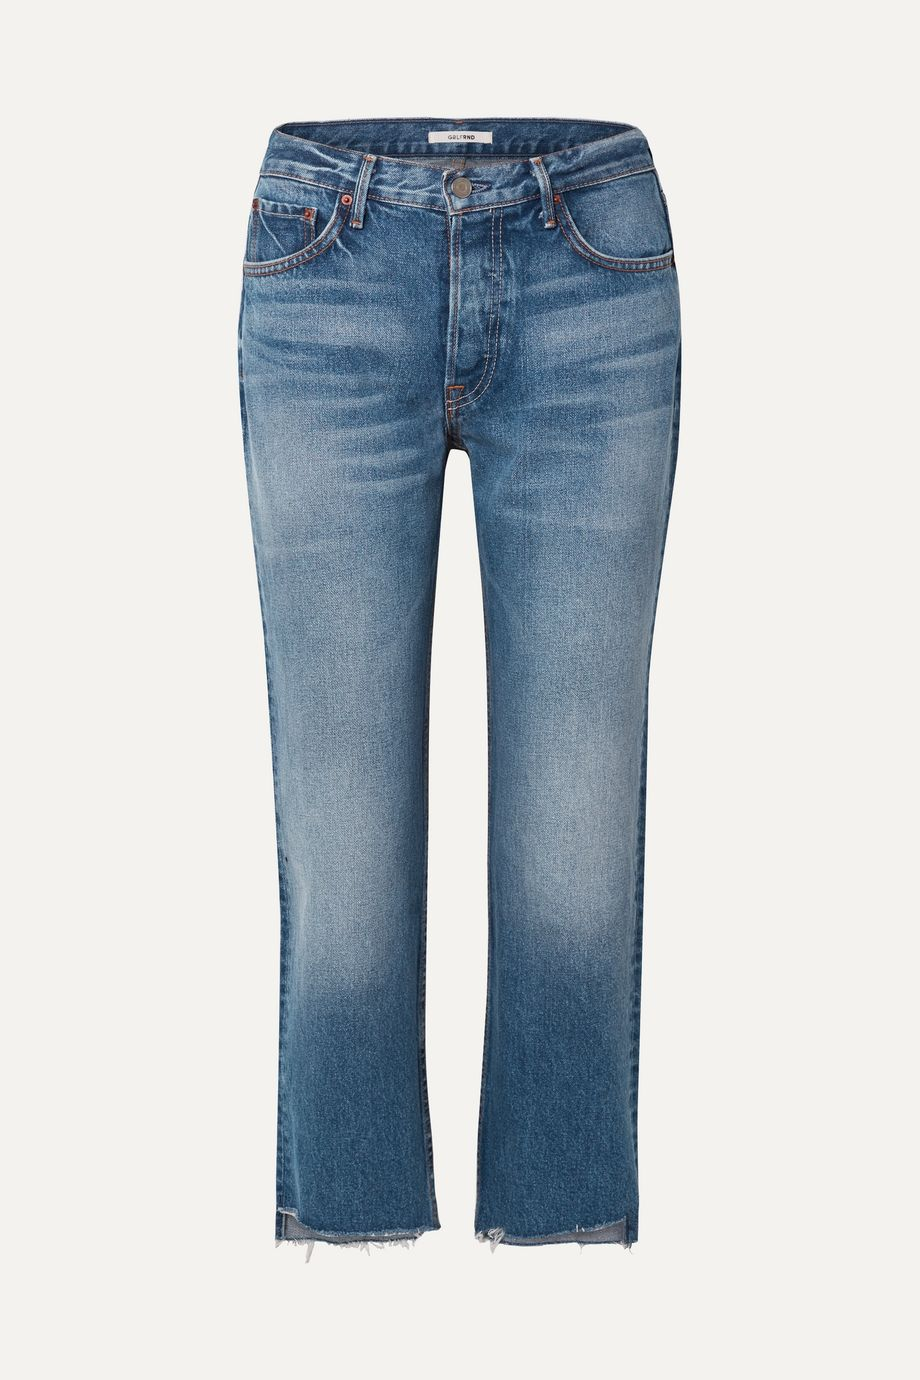 GRLFRND Helena cropped distressed mid-rise straight-leg jeans